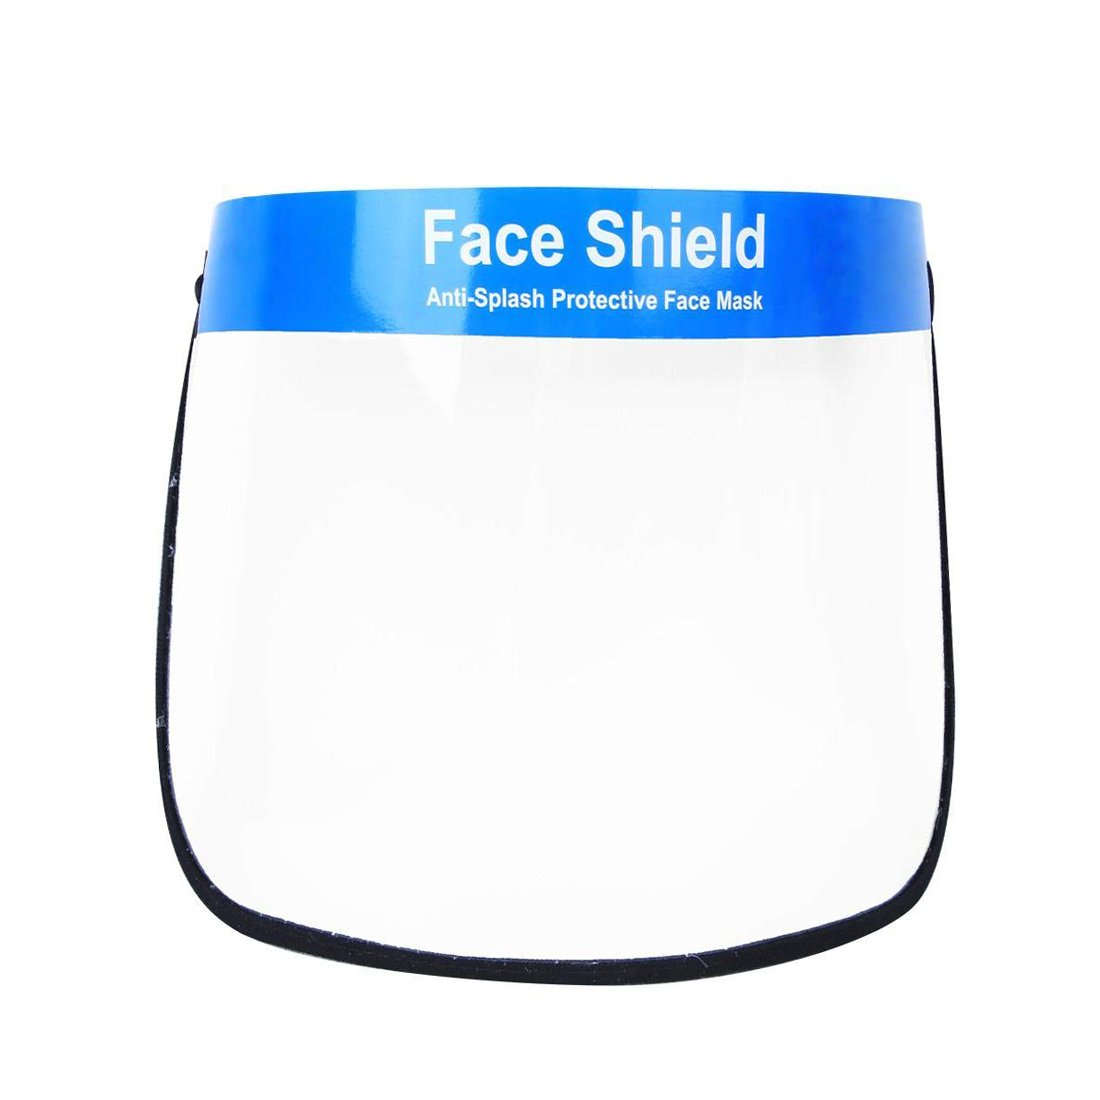 Transparent Full Face Protective Visor with Eye & Head Protection Shield